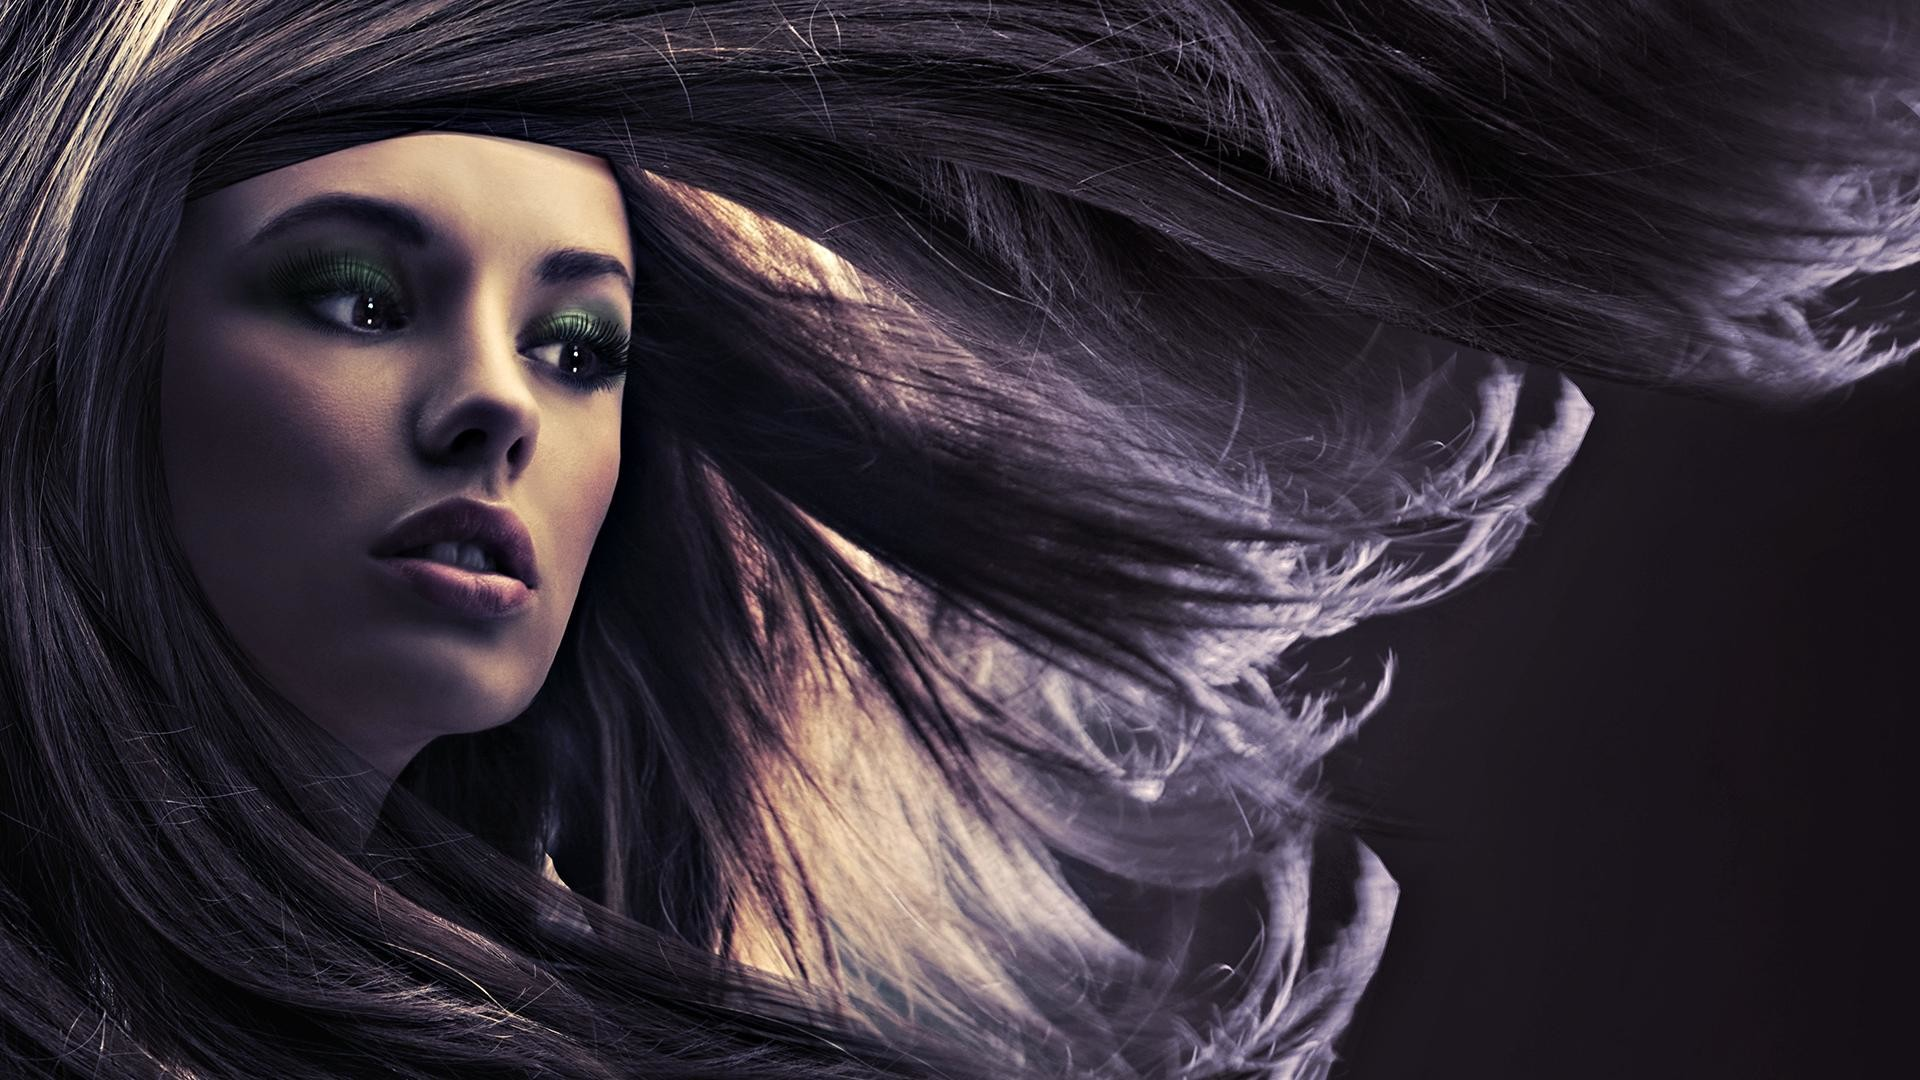 Beauty Salon Wallpaper 41 Images HD Wallpapers Download Free Images Wallpaper [1000image.com]